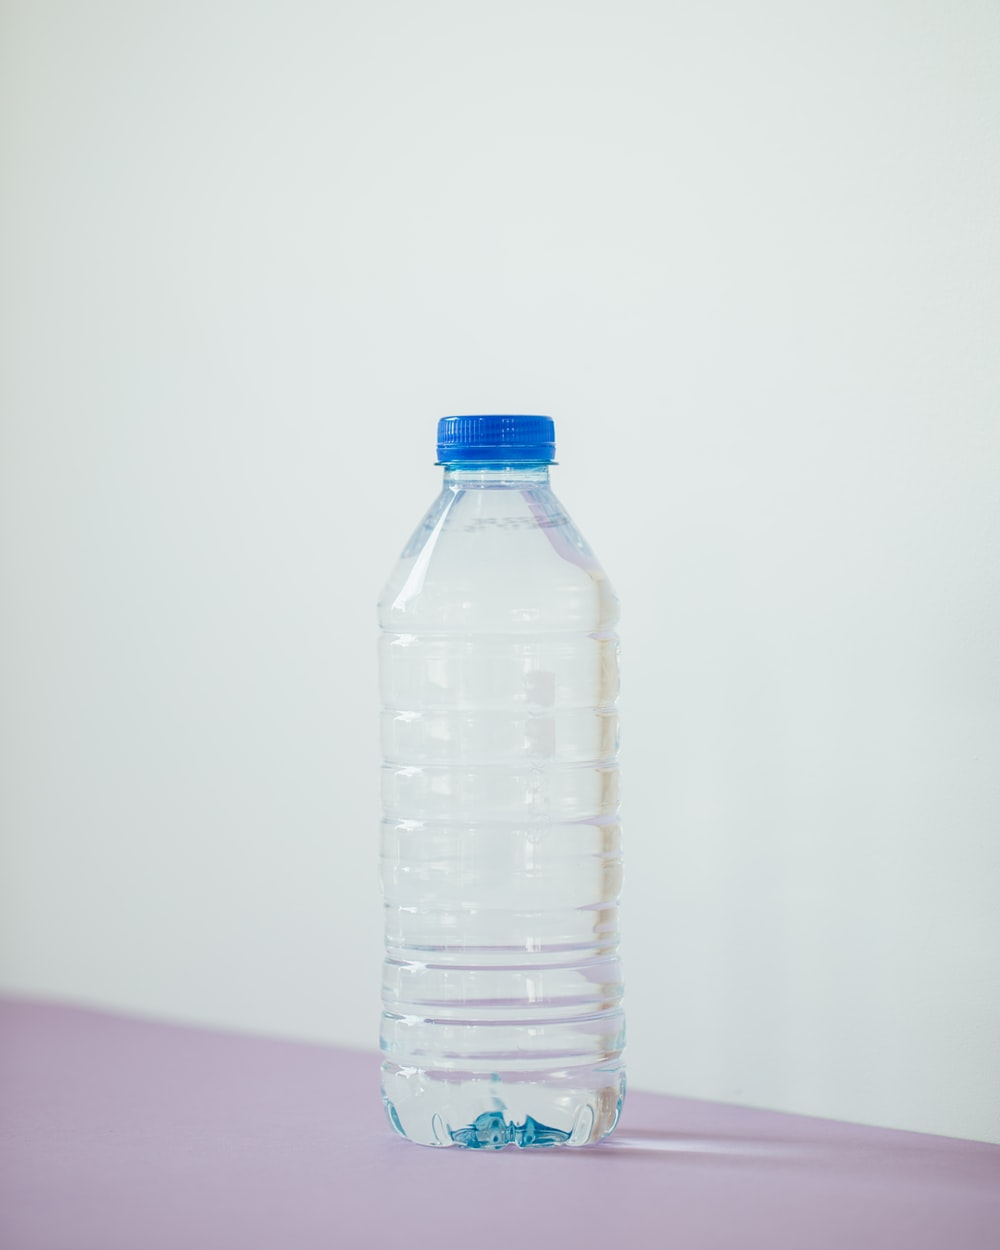 clear plastic bottle on white table